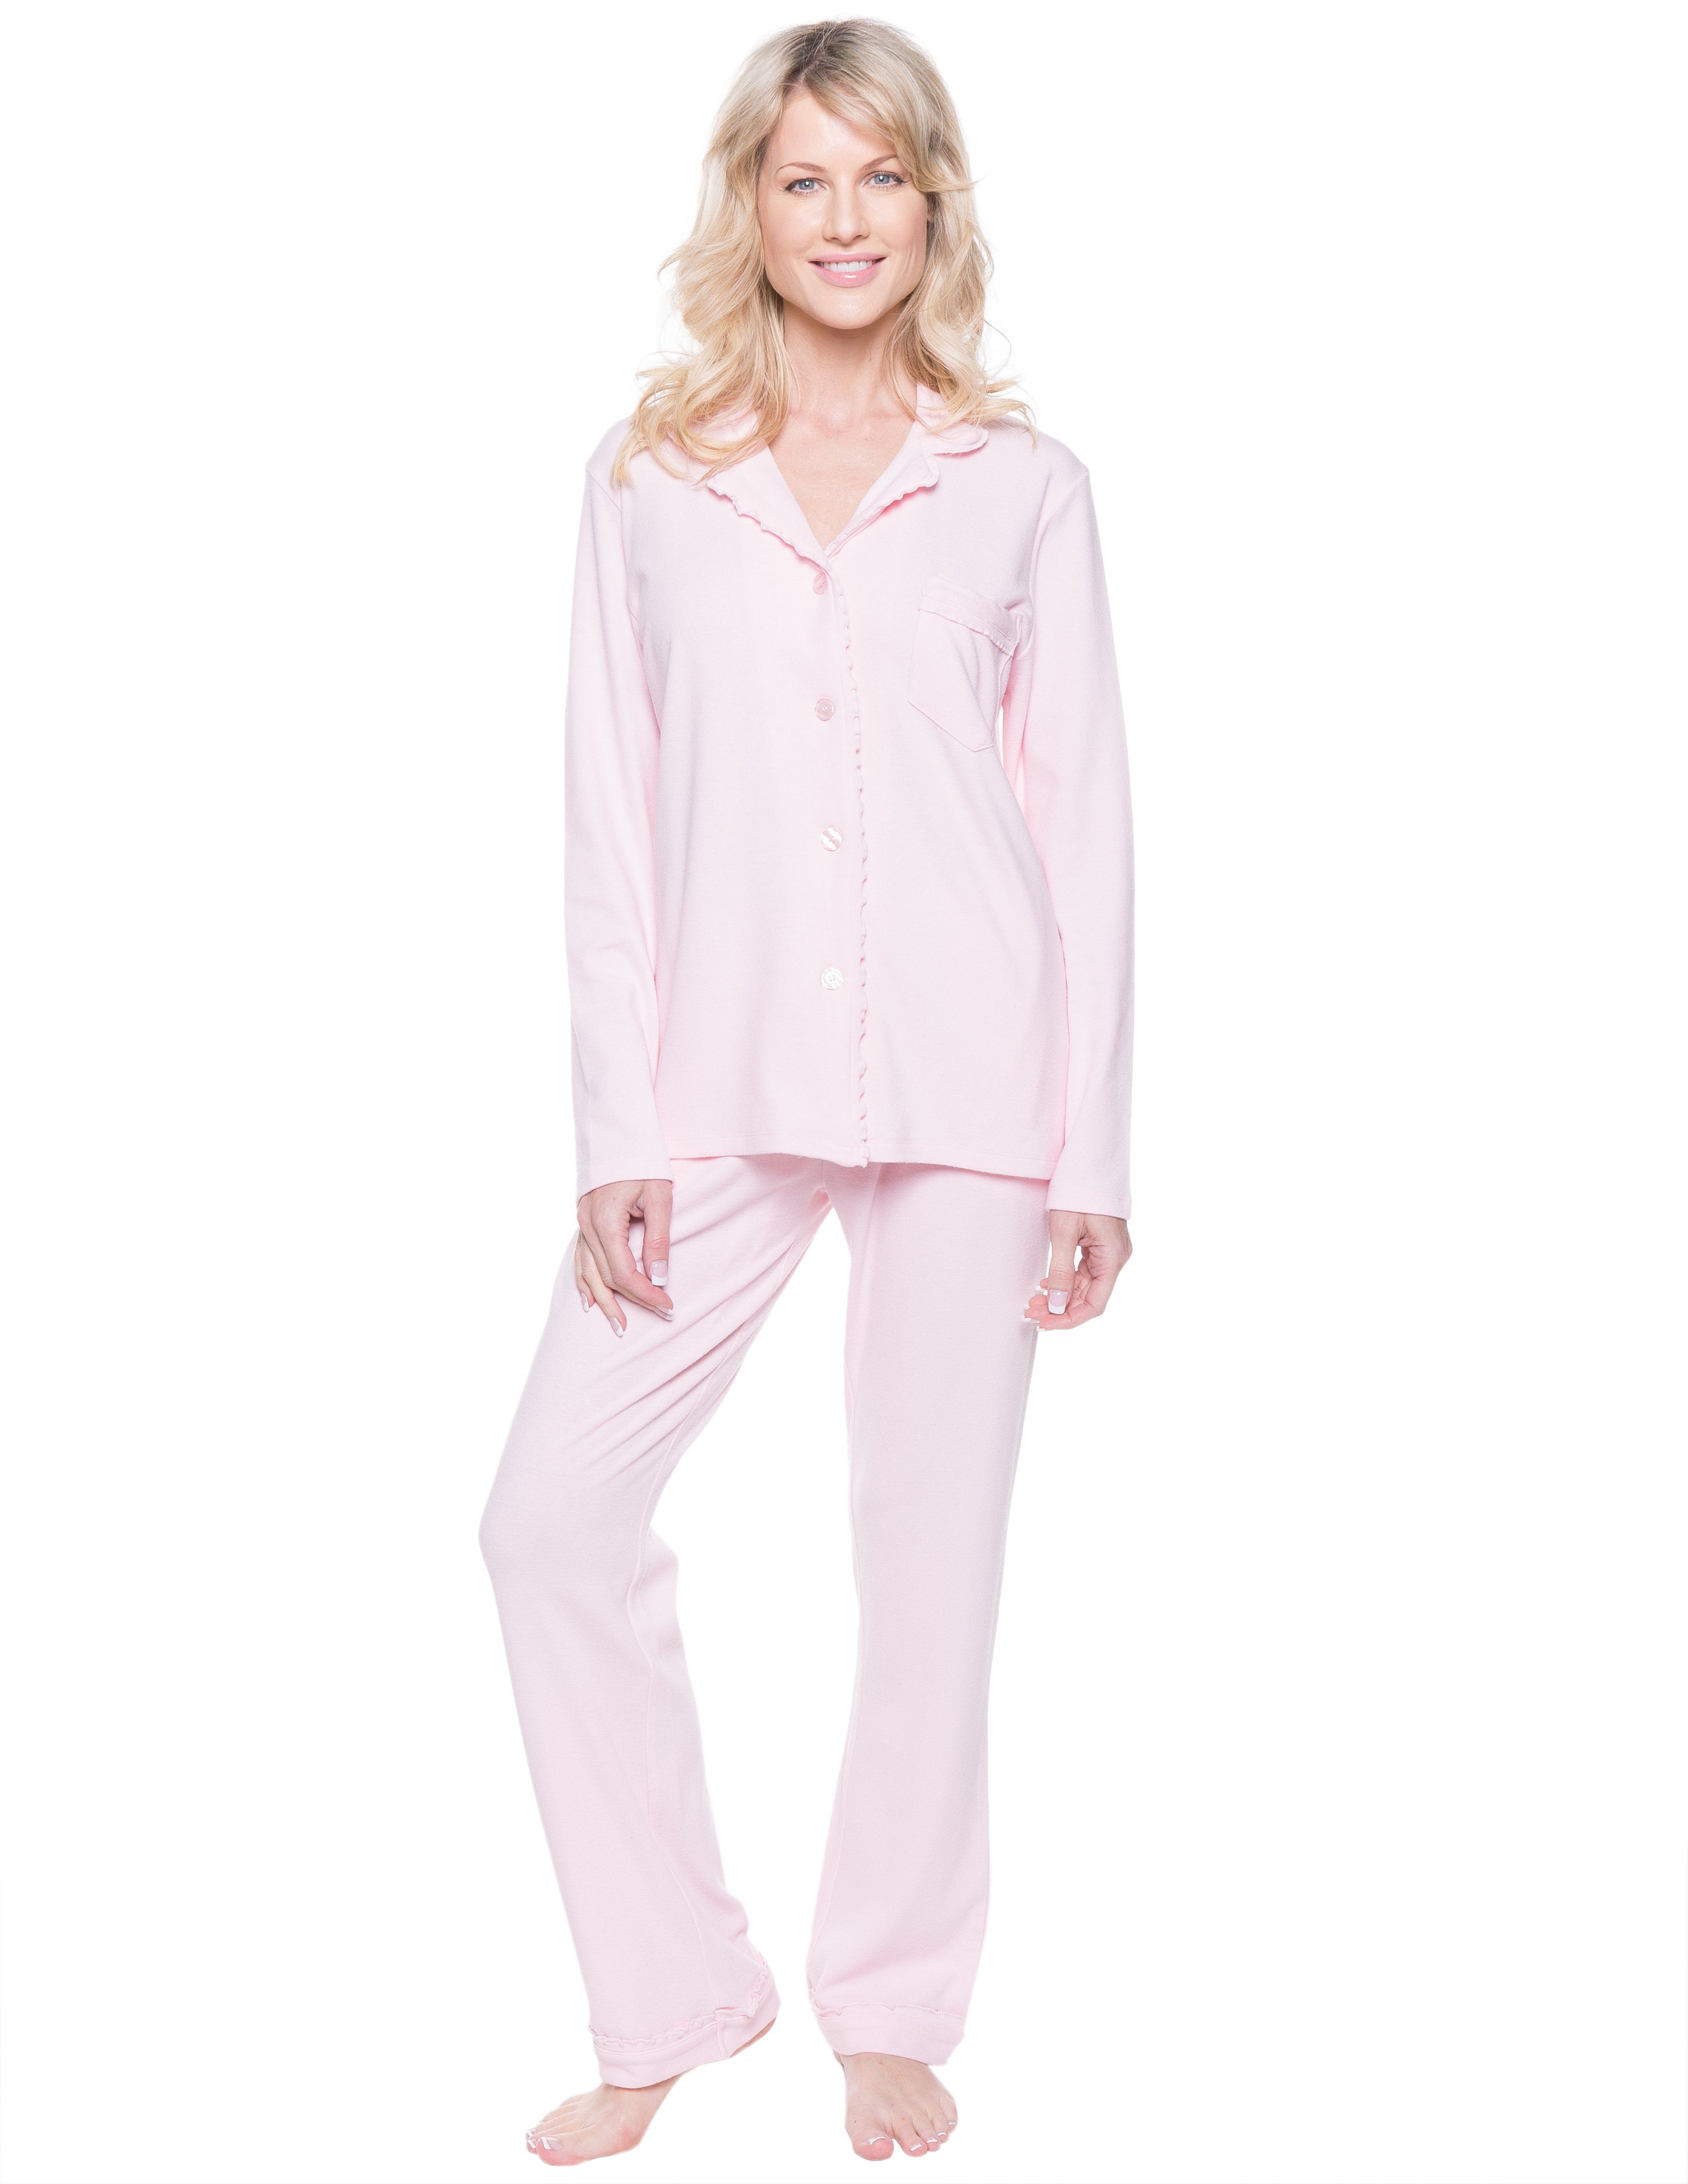 Women's Cozy Rib Pajama Sleepwear Set